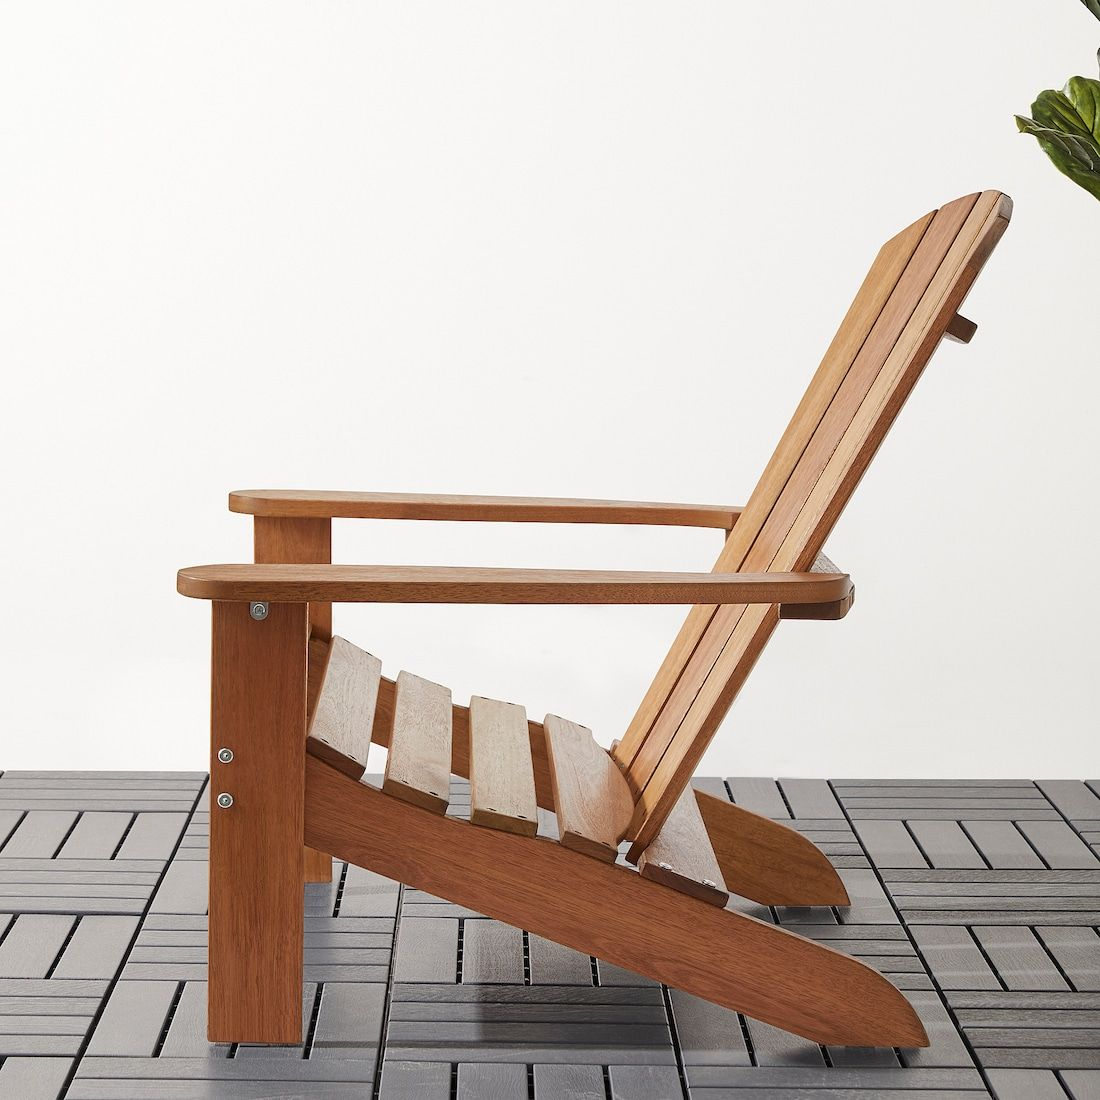 Kloven Deck Chair Outdoor Light Brown Ikea In 2020 Outdoor Wood Furniture Deck Chairs Wooden Outdoor Furniture